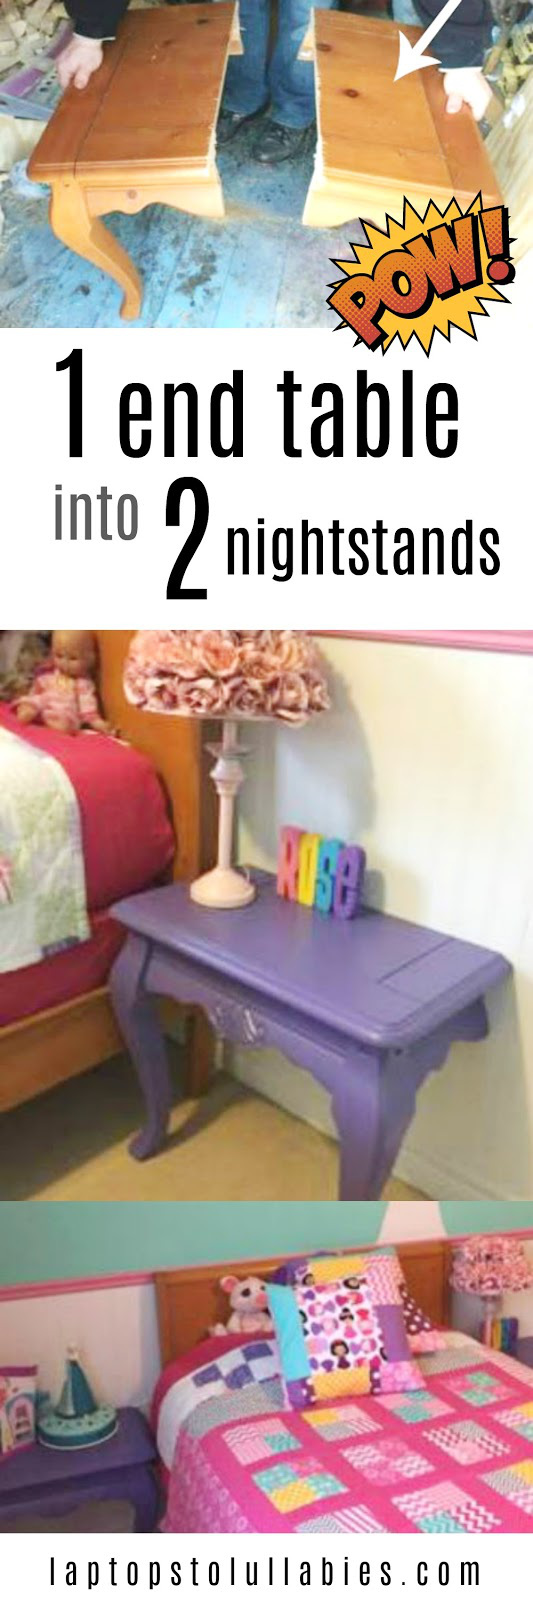 e9994-one-end-table-into-two-nightstands.jpg